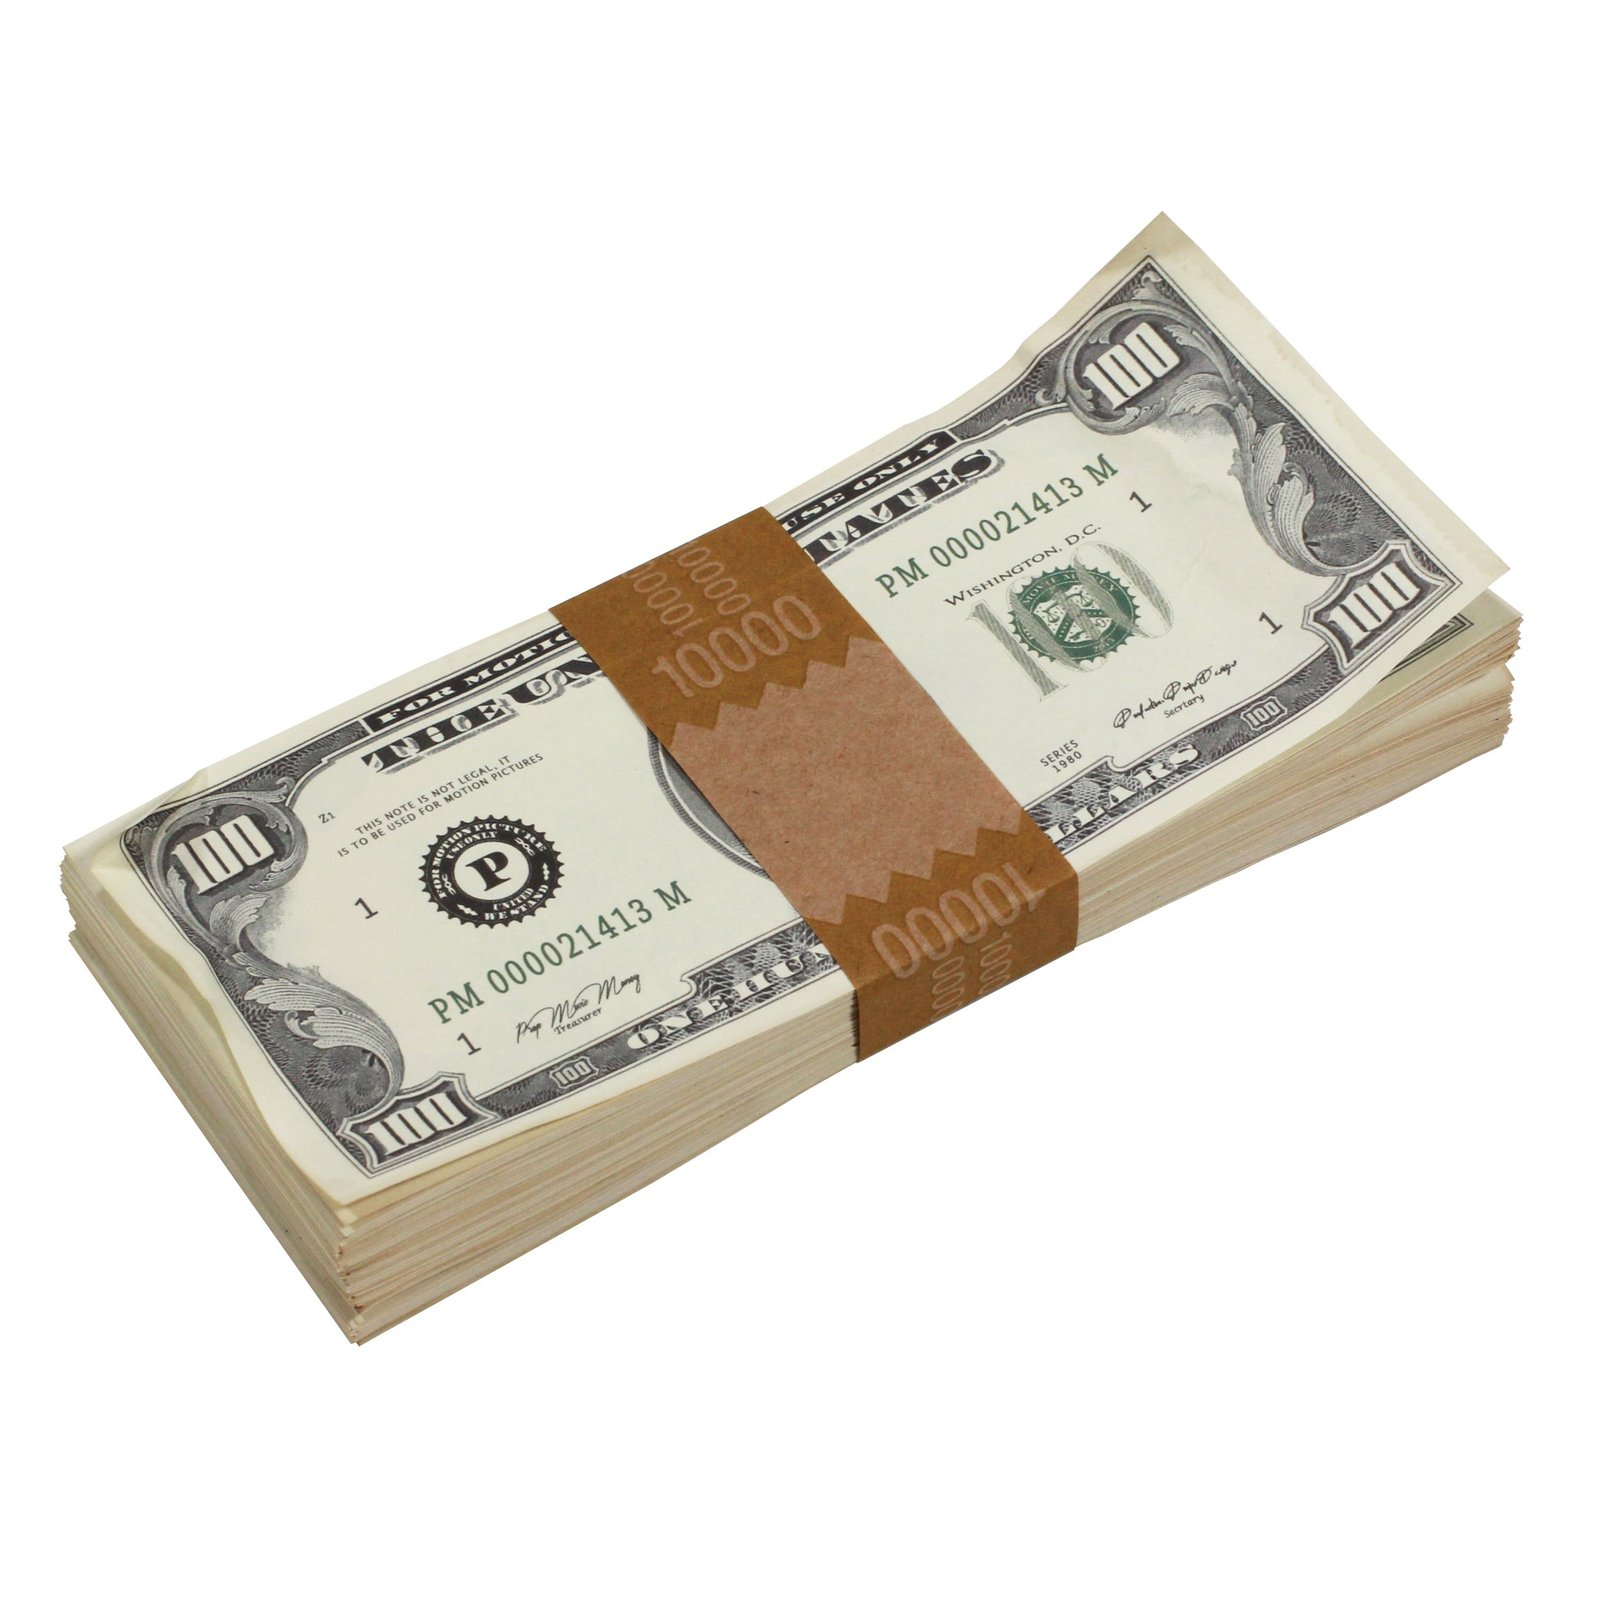 1980s Series $100s Aged $1,000,000 Full Print Package Realistic Prop Money image 4